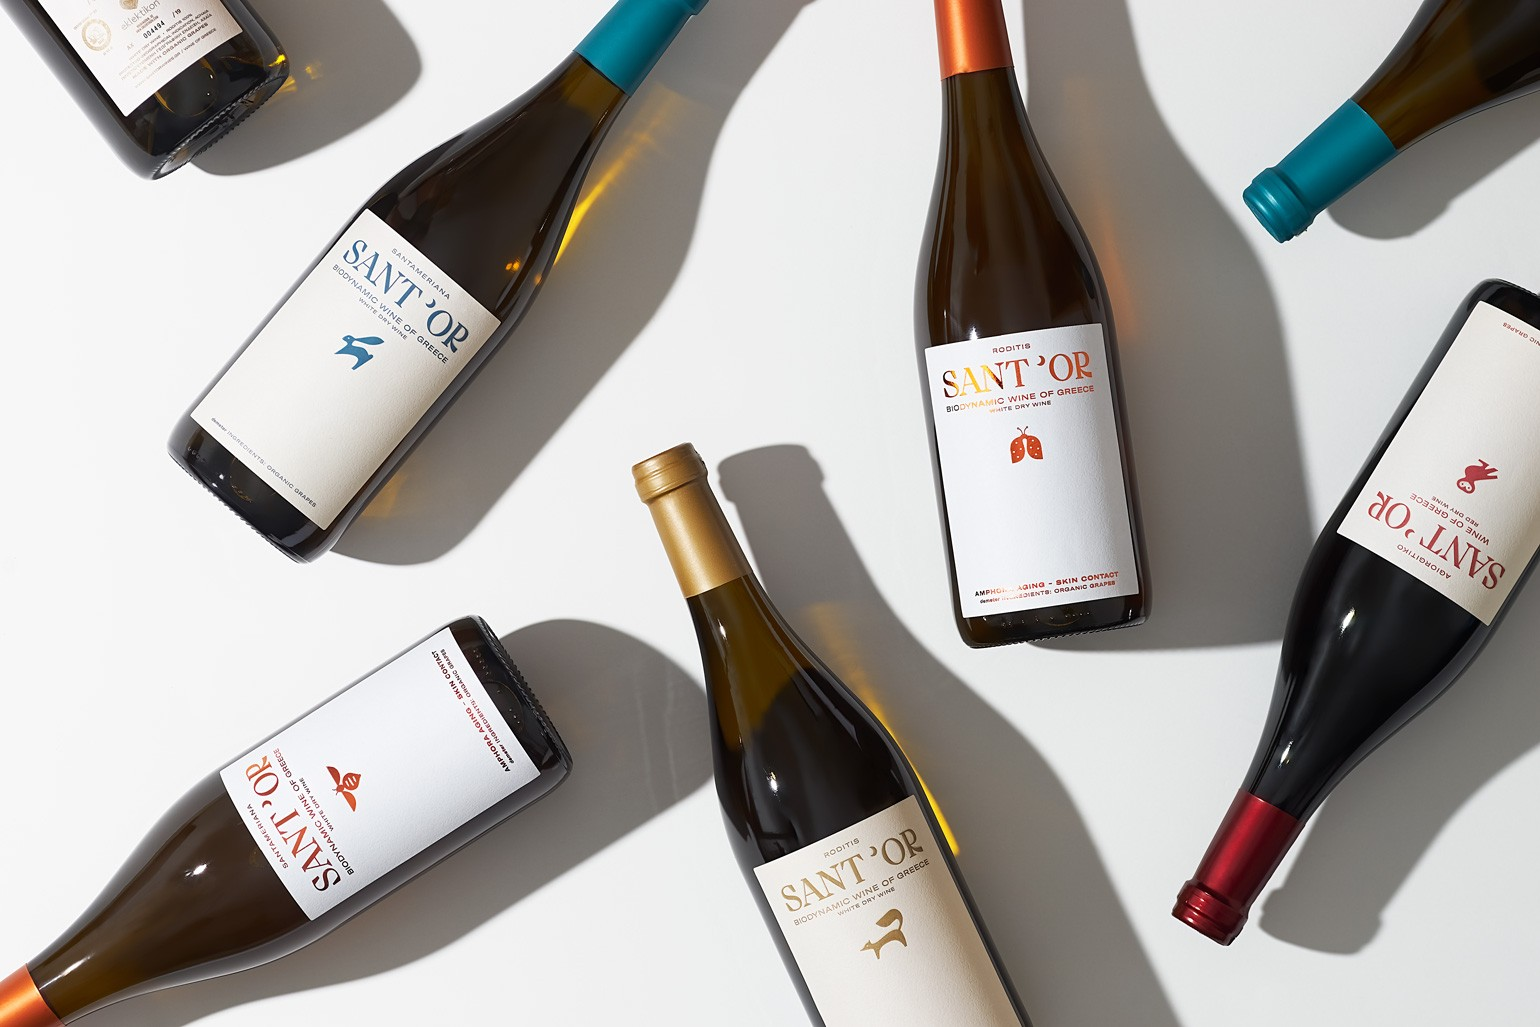 Sant'or Wines Packaging Design for the First Certified Biodynamic Winery in Greece by Kommigraphics